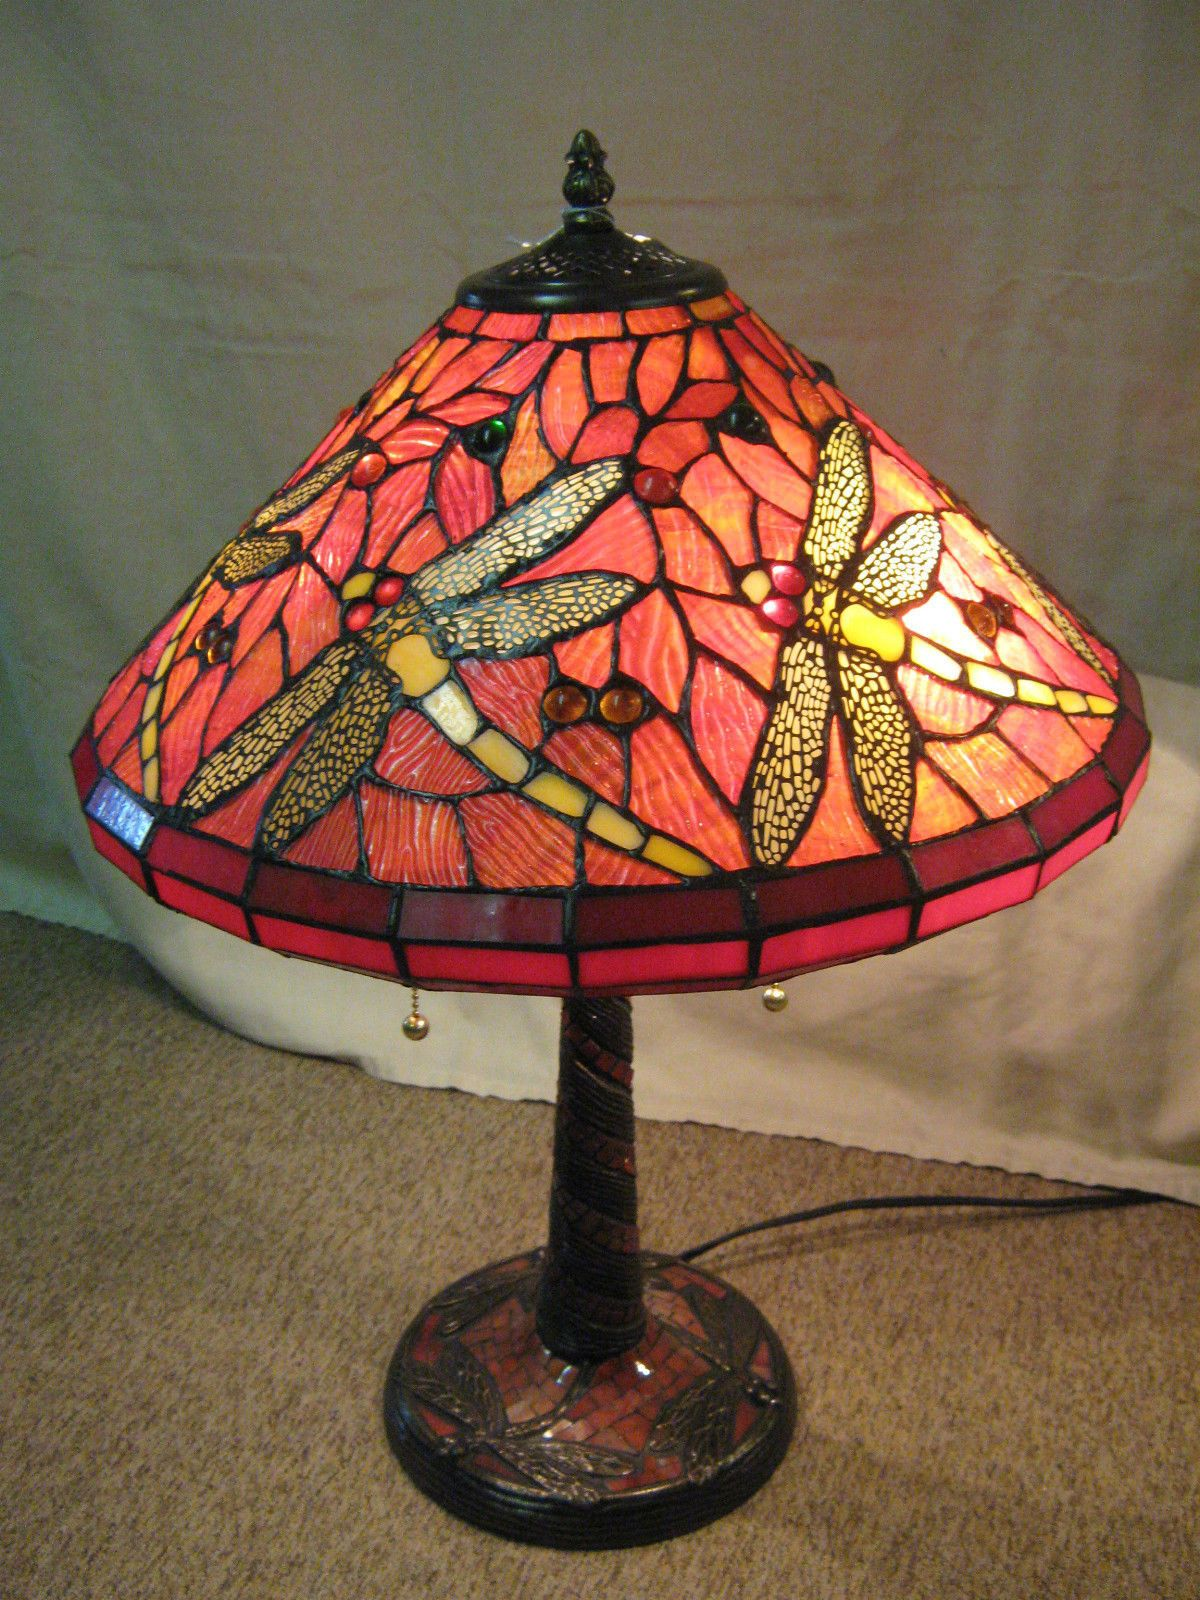 Lamp Glas In Lood Tiffany Style Stained Glass Dragonfly Lamp Lampen Stained